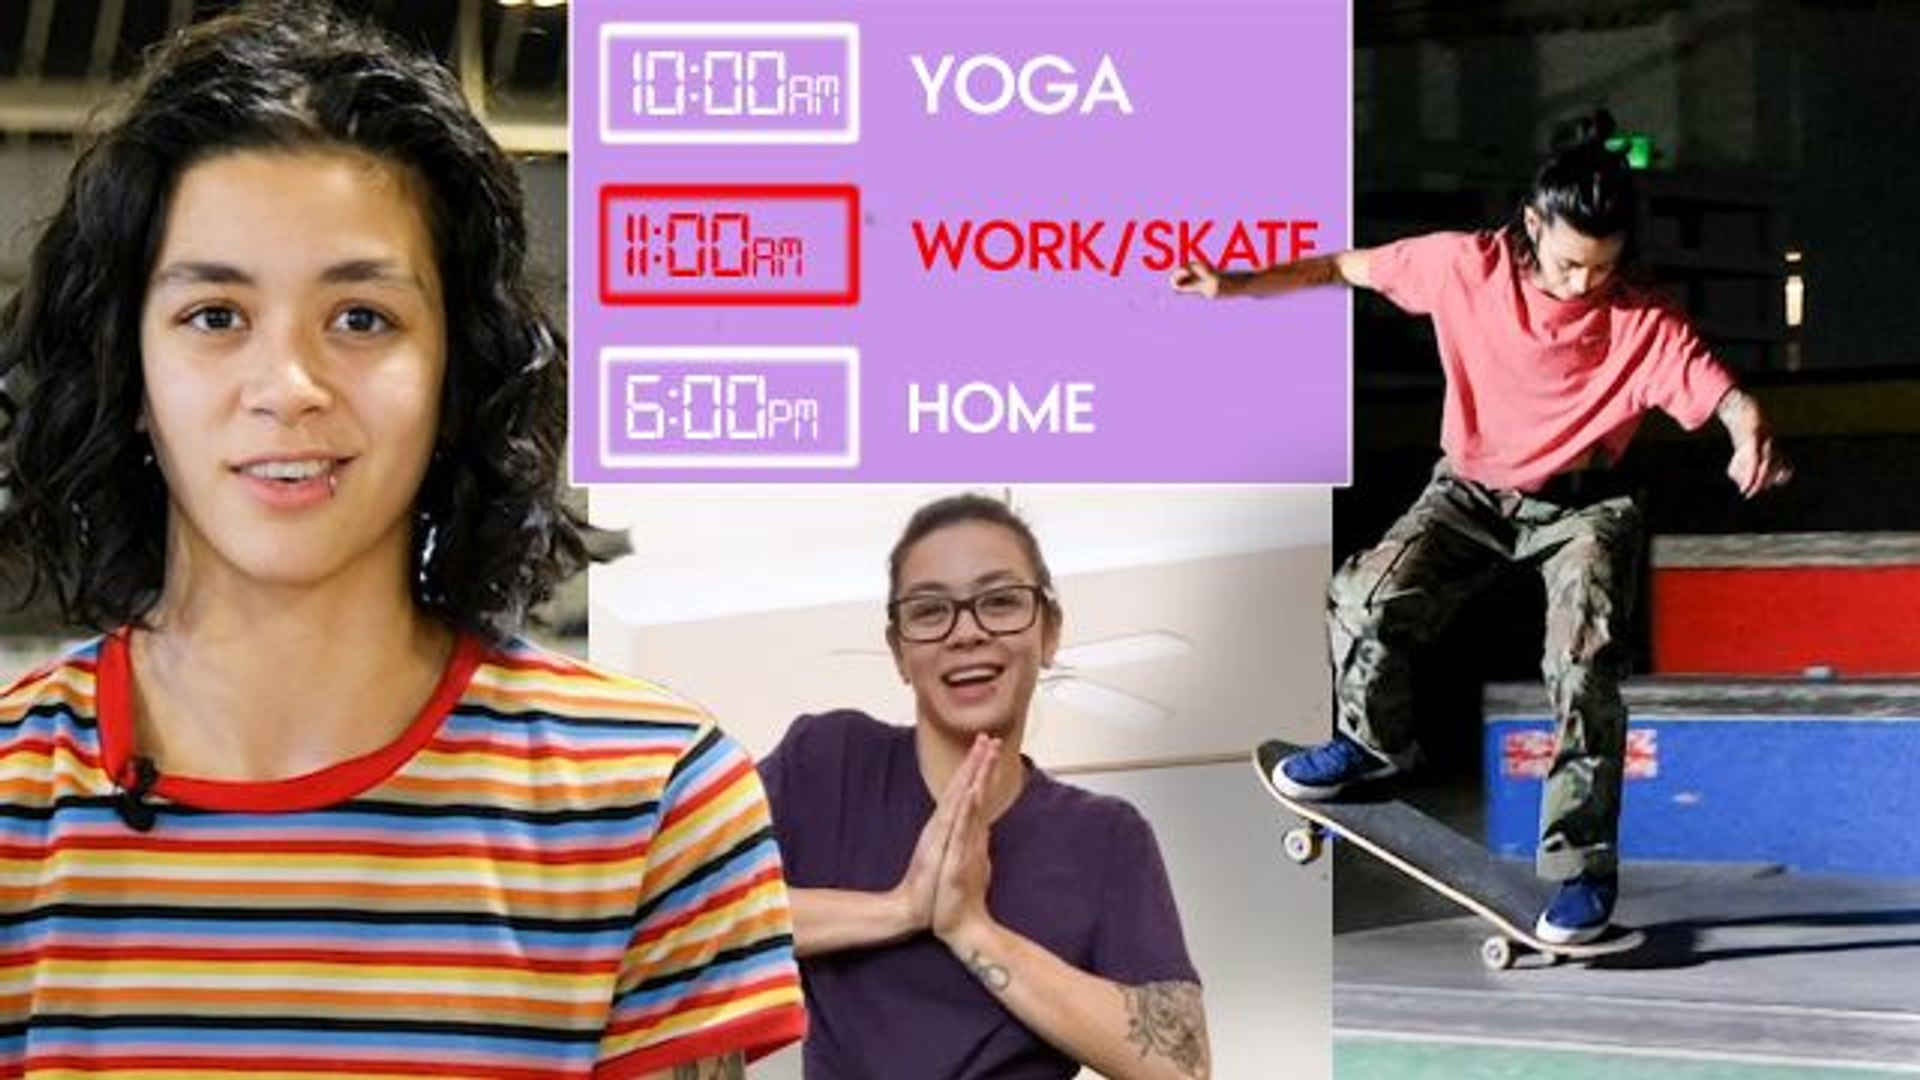 Olympic Skateboarder's Daily Routine While Filming a New Skate Video